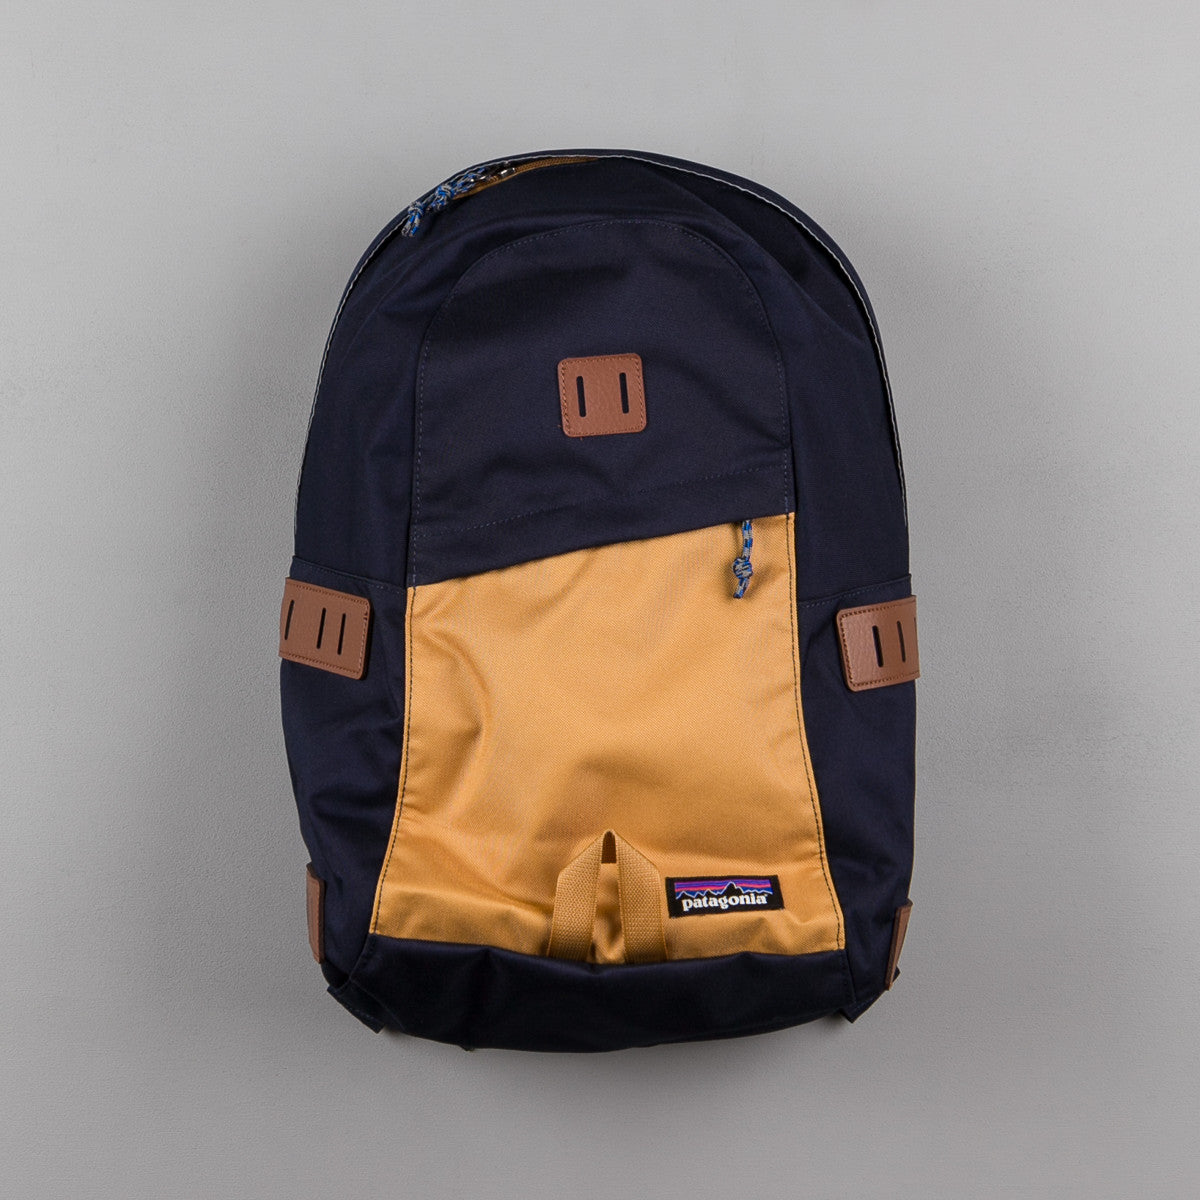 Patagonia Ironwood Backpack - Navy Blue